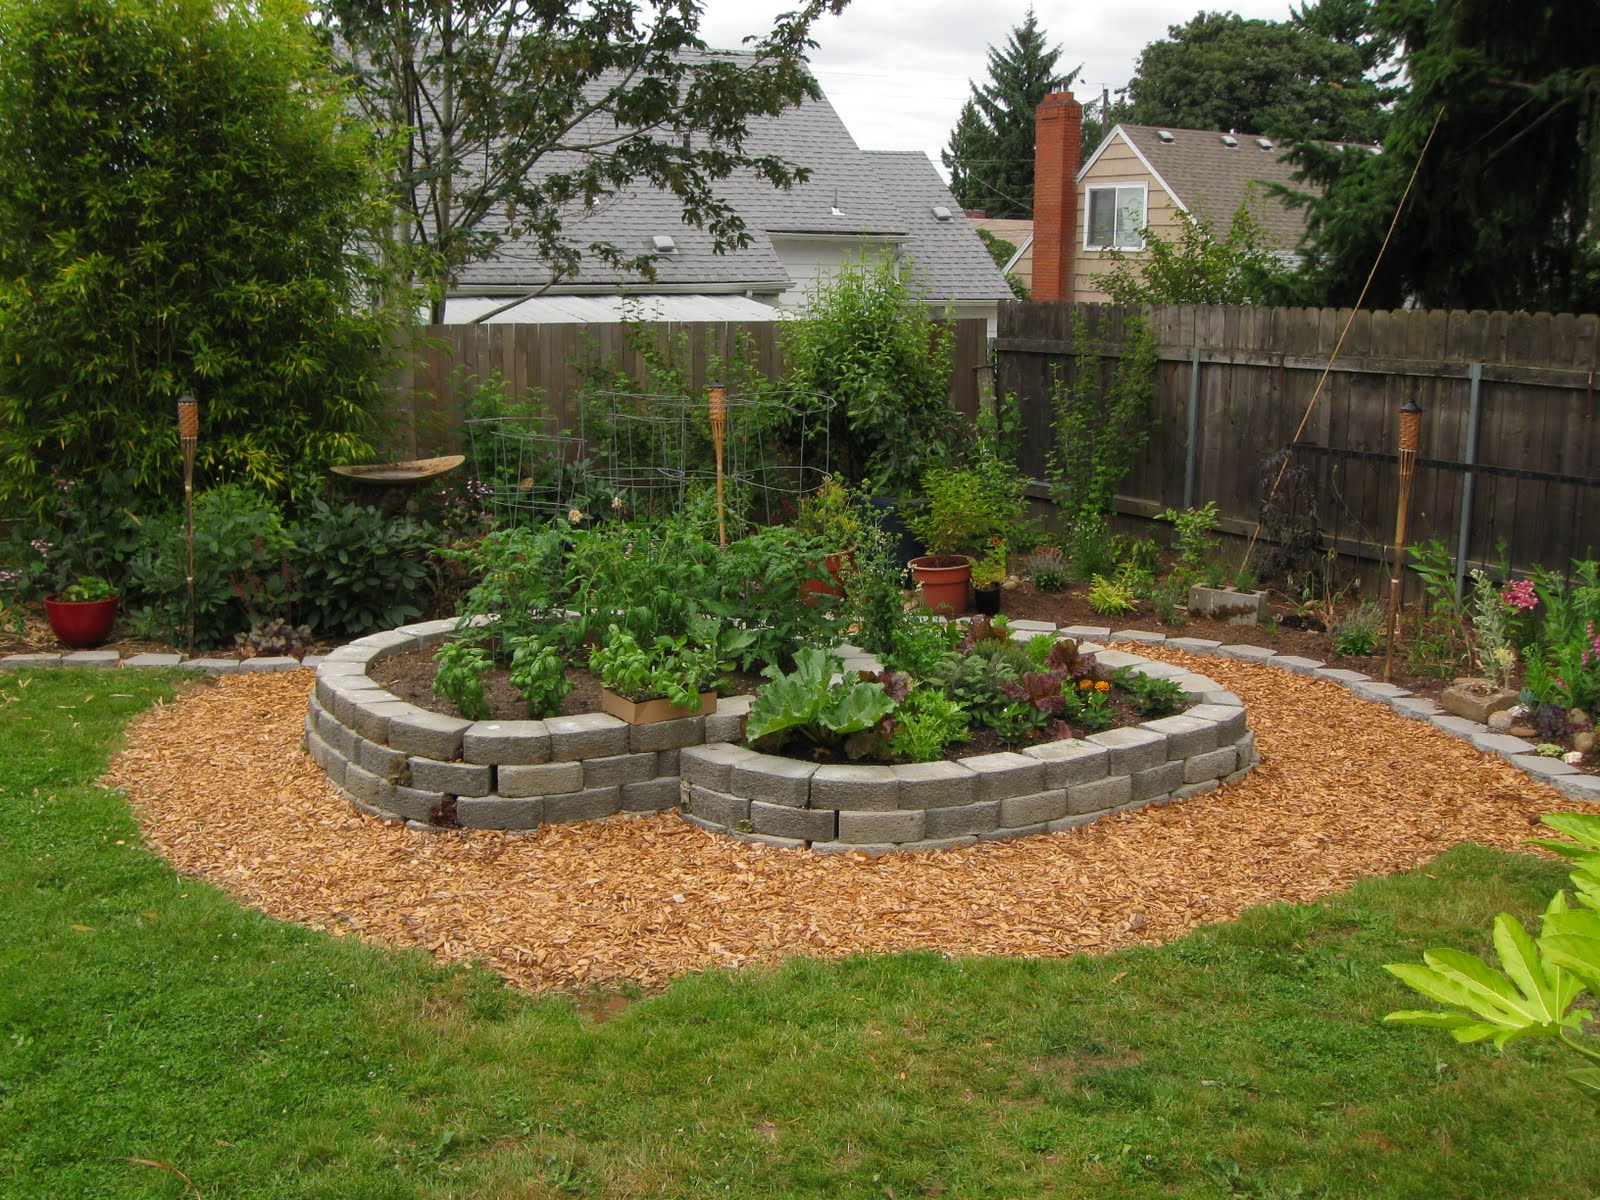 Simple landscaping ideas with low maintenance design and for Simple landscape plans